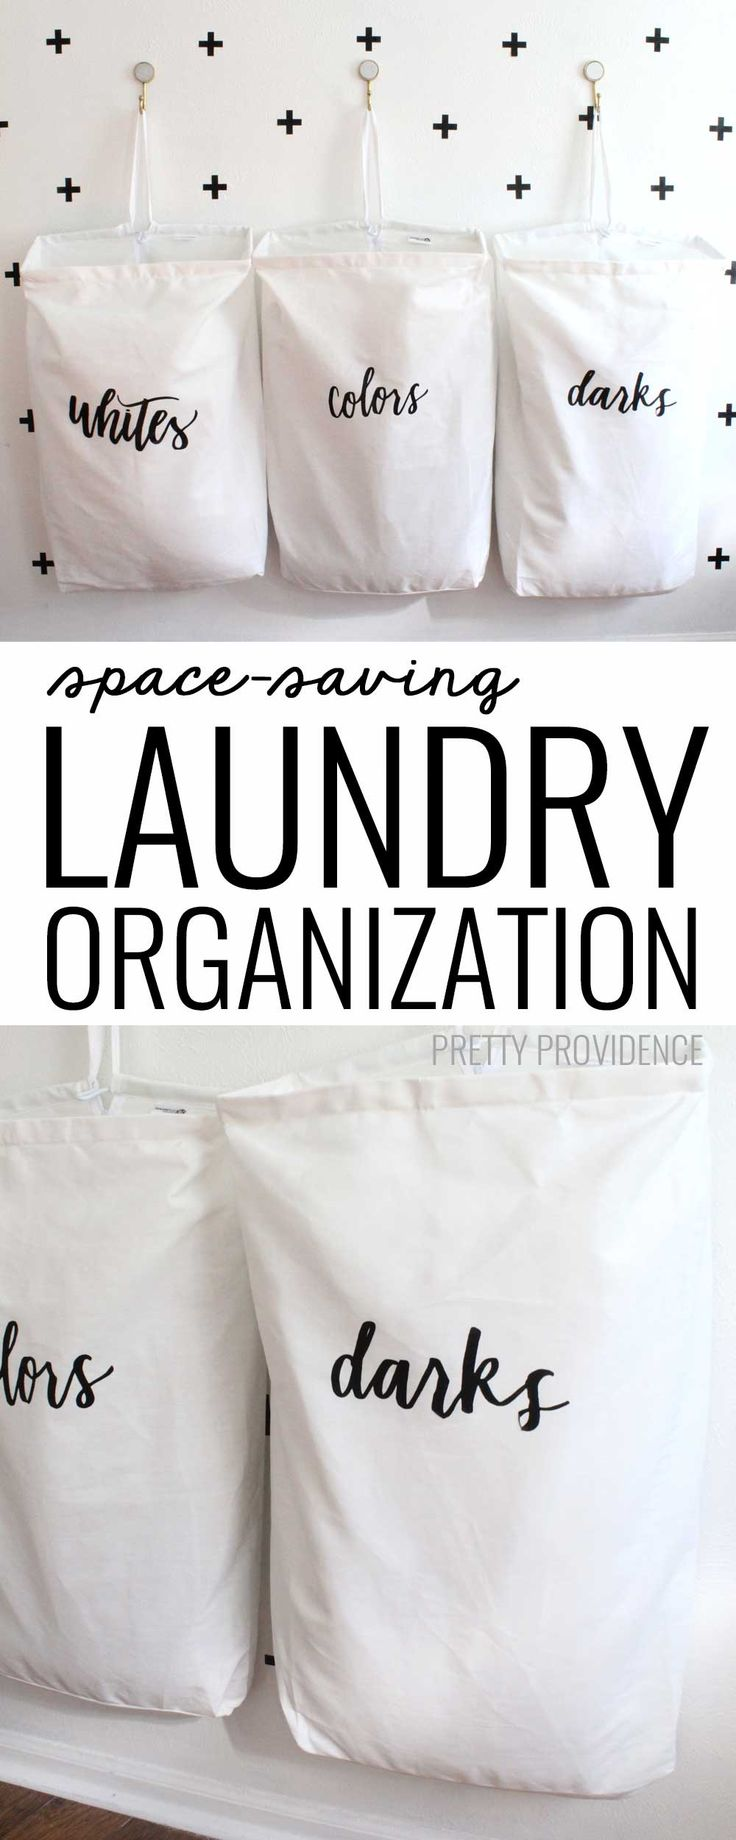 "I love this space-saving laundry organization idea! They are the best laundry bags around, and the ""whites, colors, darks"" labels are so pretty too! #CricutMade #sayitwithcricut #ad"